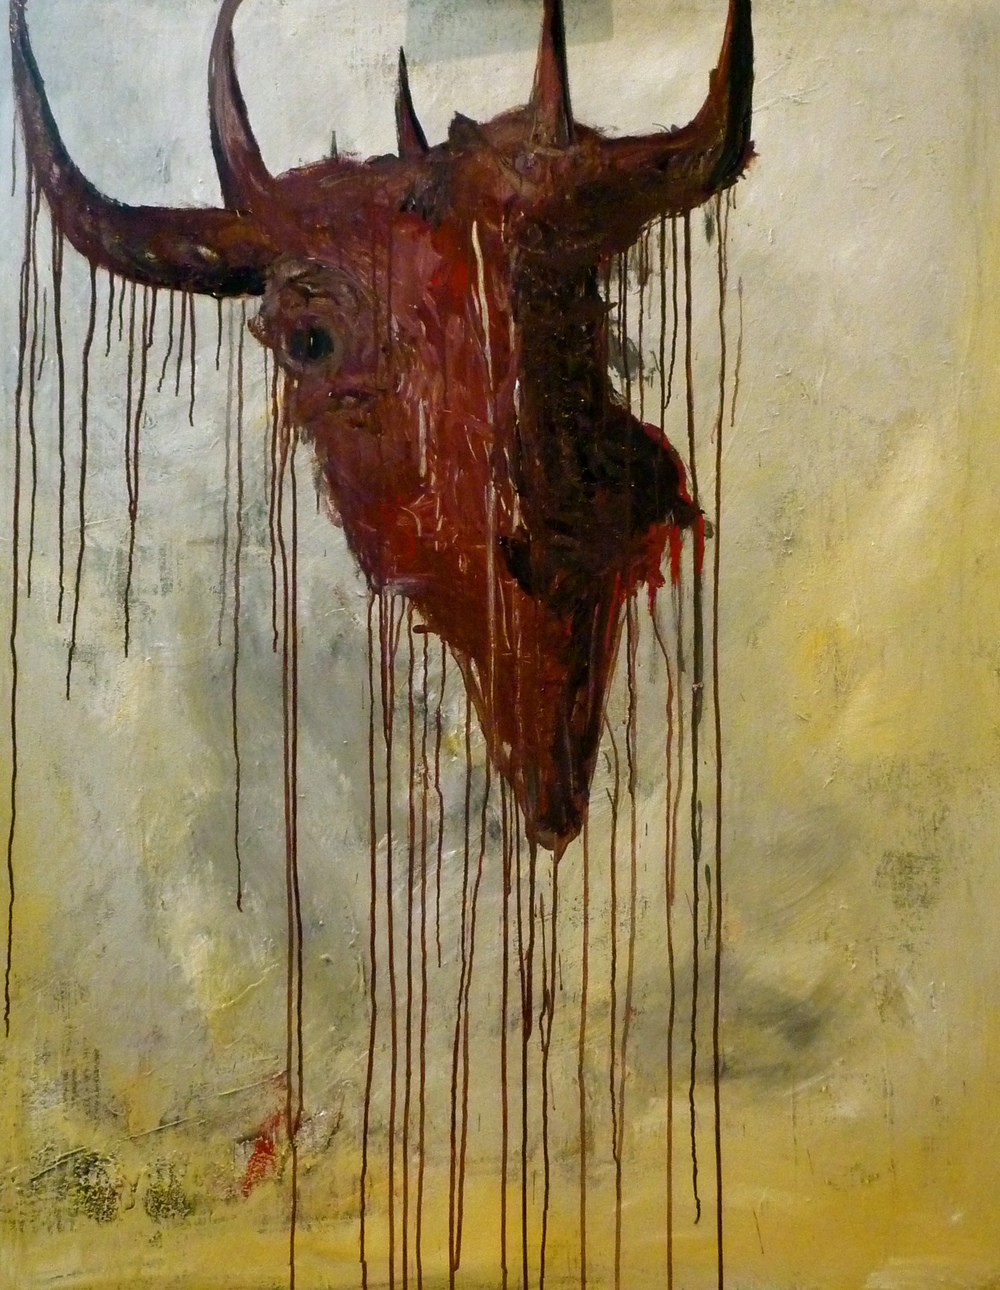 'Bull' 2010  Oil on canvas  122cm x 152cm